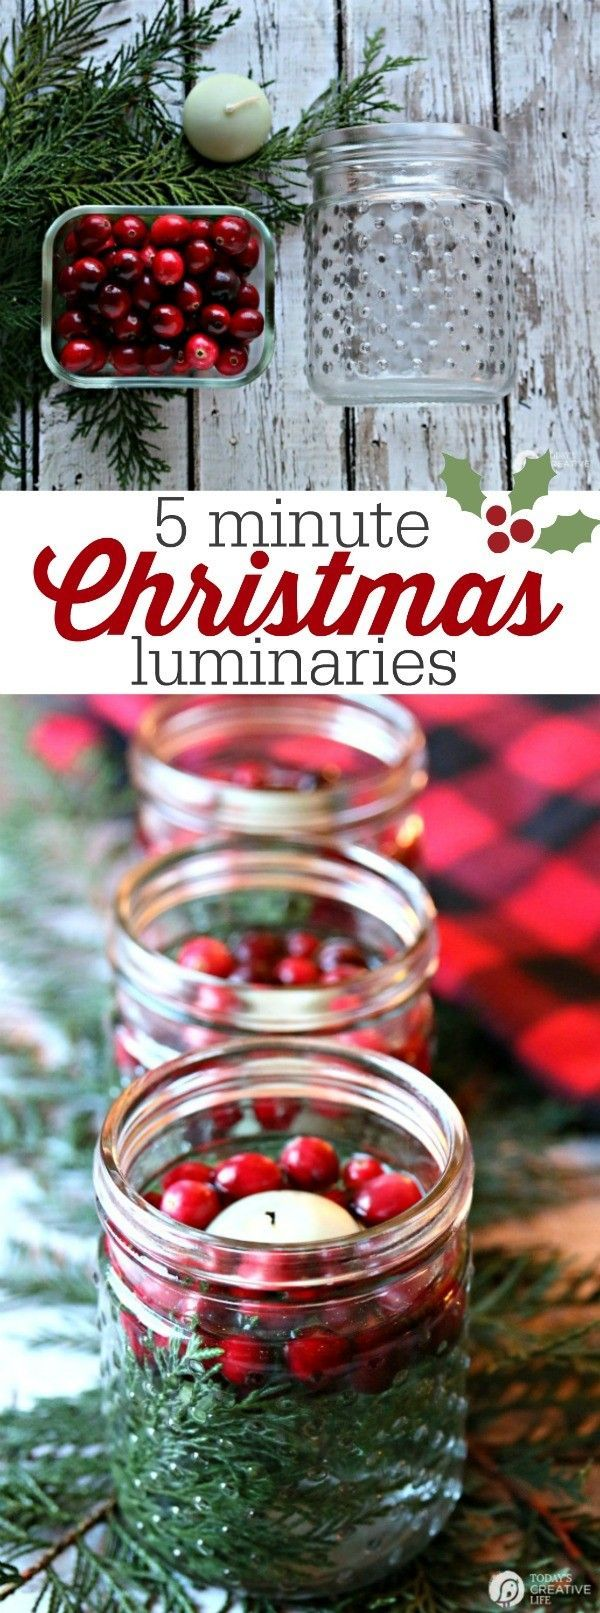 5 Minute Cranberry Cedar Christmas Luminaries Easy